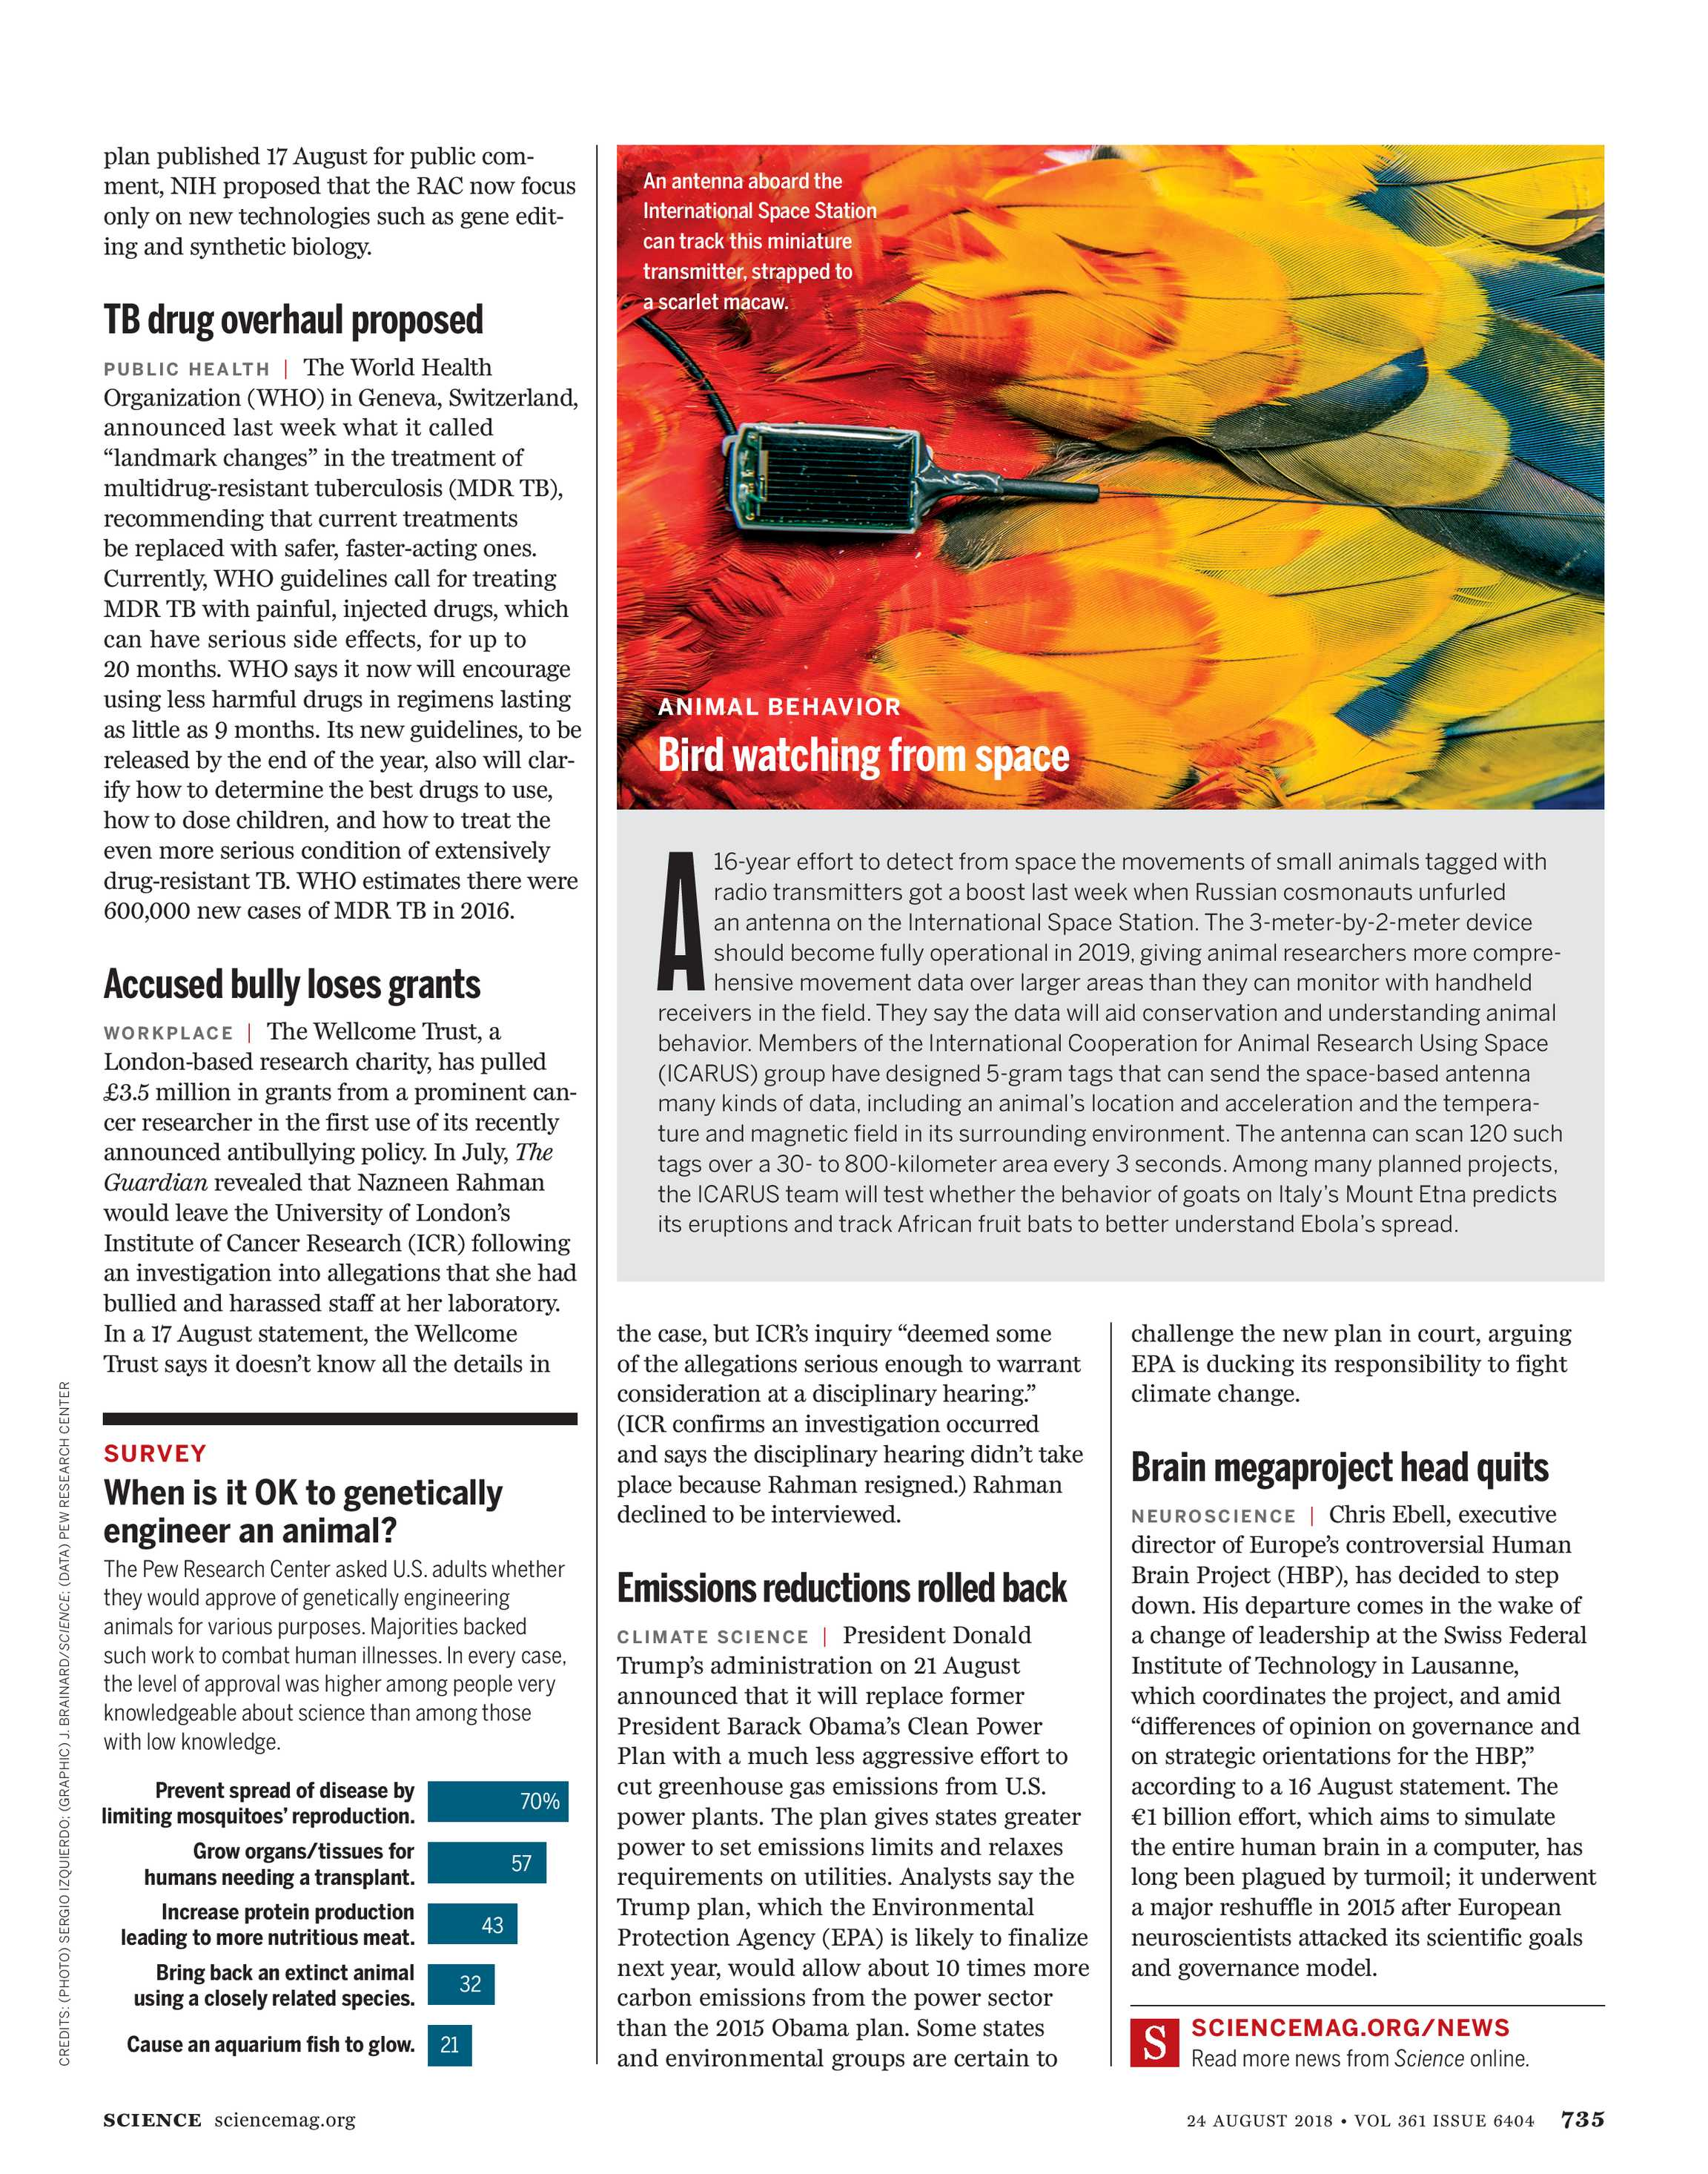 Science Magazine - August 24, 2018 - page 736